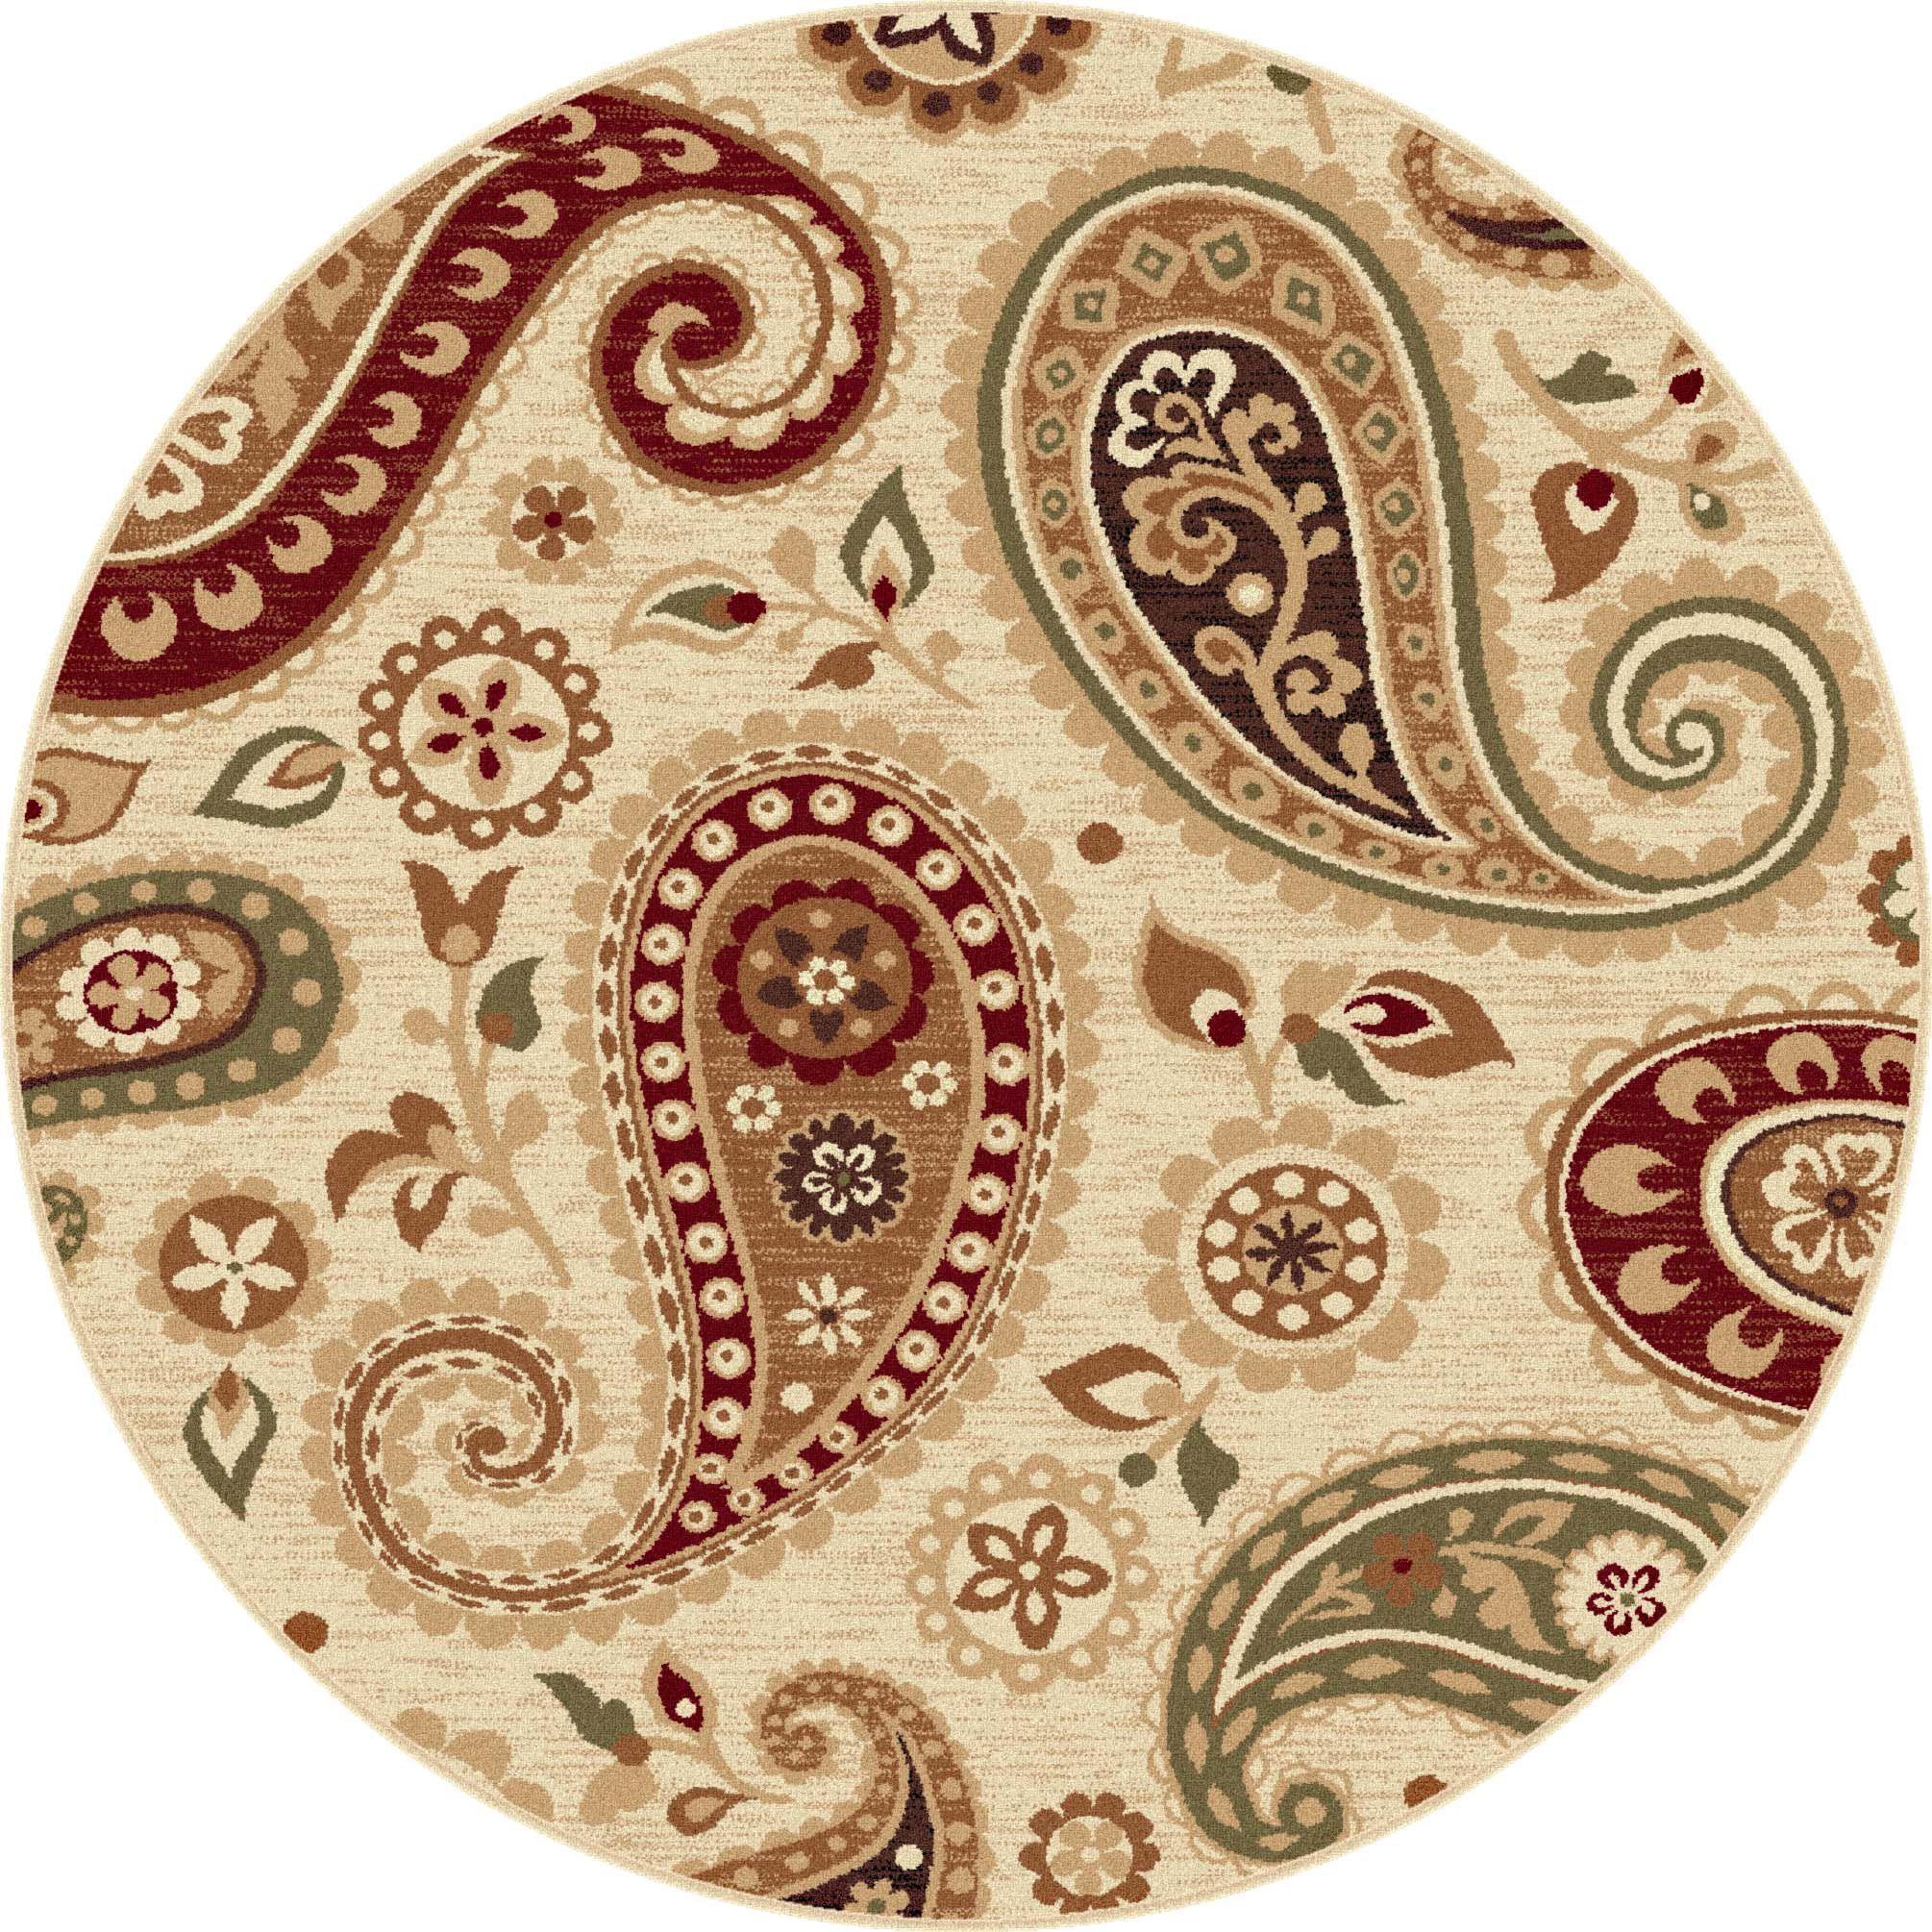 These Paisley Ivory Area Rugs Are Round In Shape For A